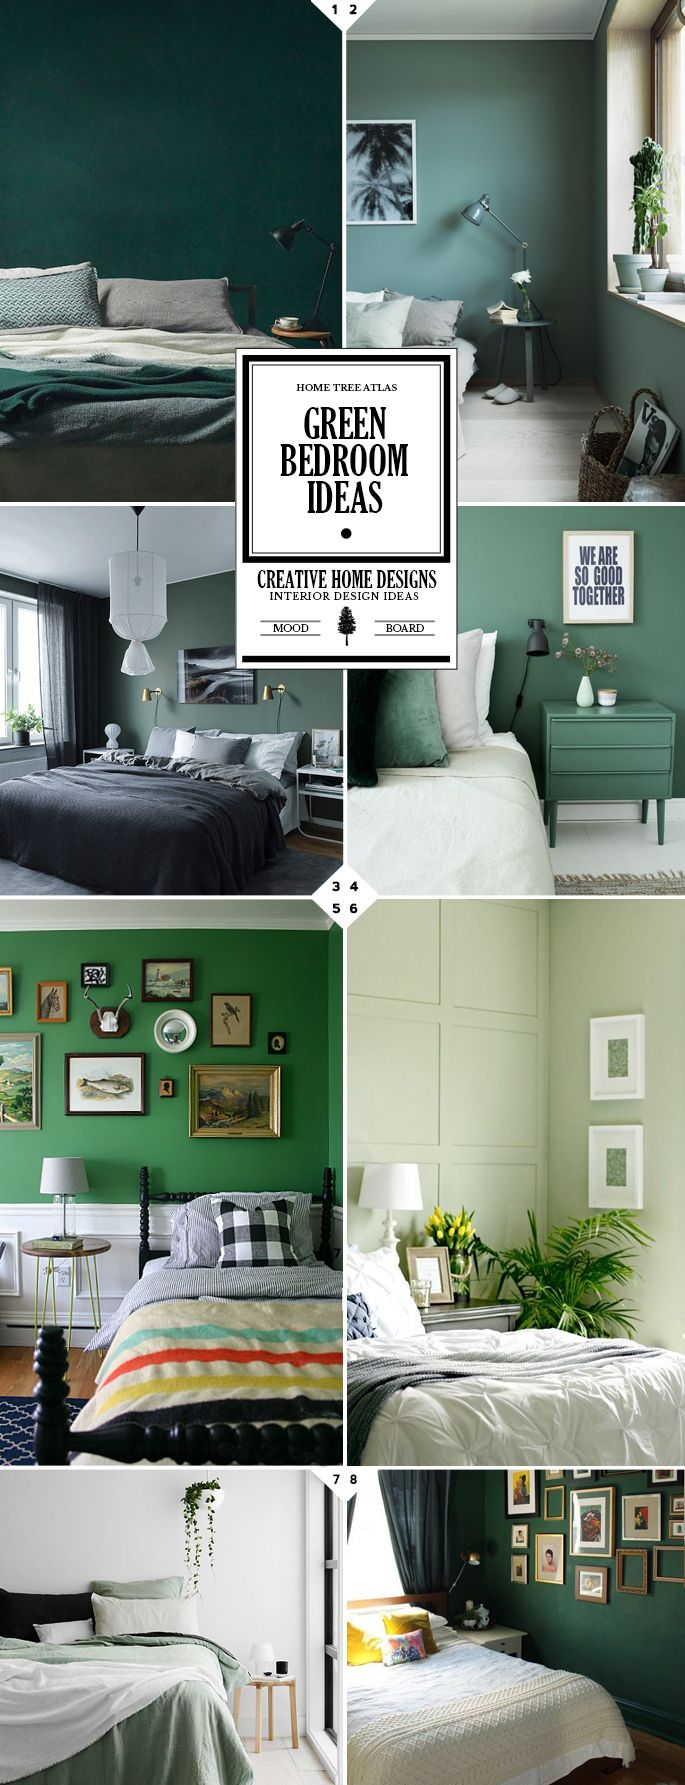 Design Green Bedroom best 25 green bedrooms ideas on pinterest bedroom design style guide ideas